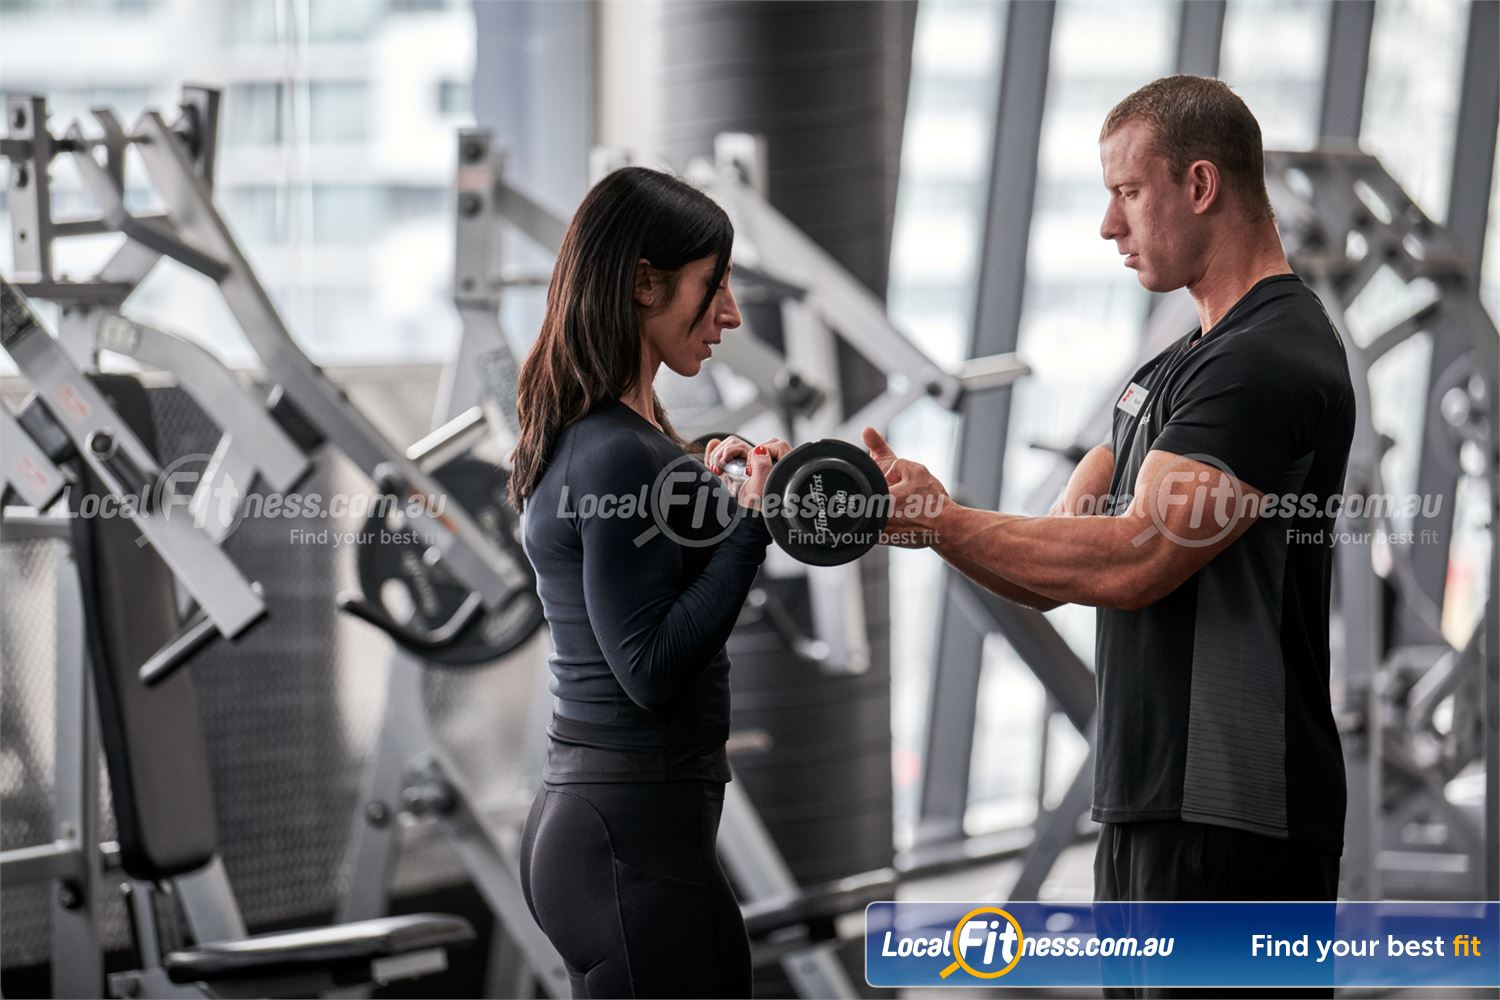 Fitness First Near Harris Park Our Parramatta gym includes a fully equipped free-weights area.